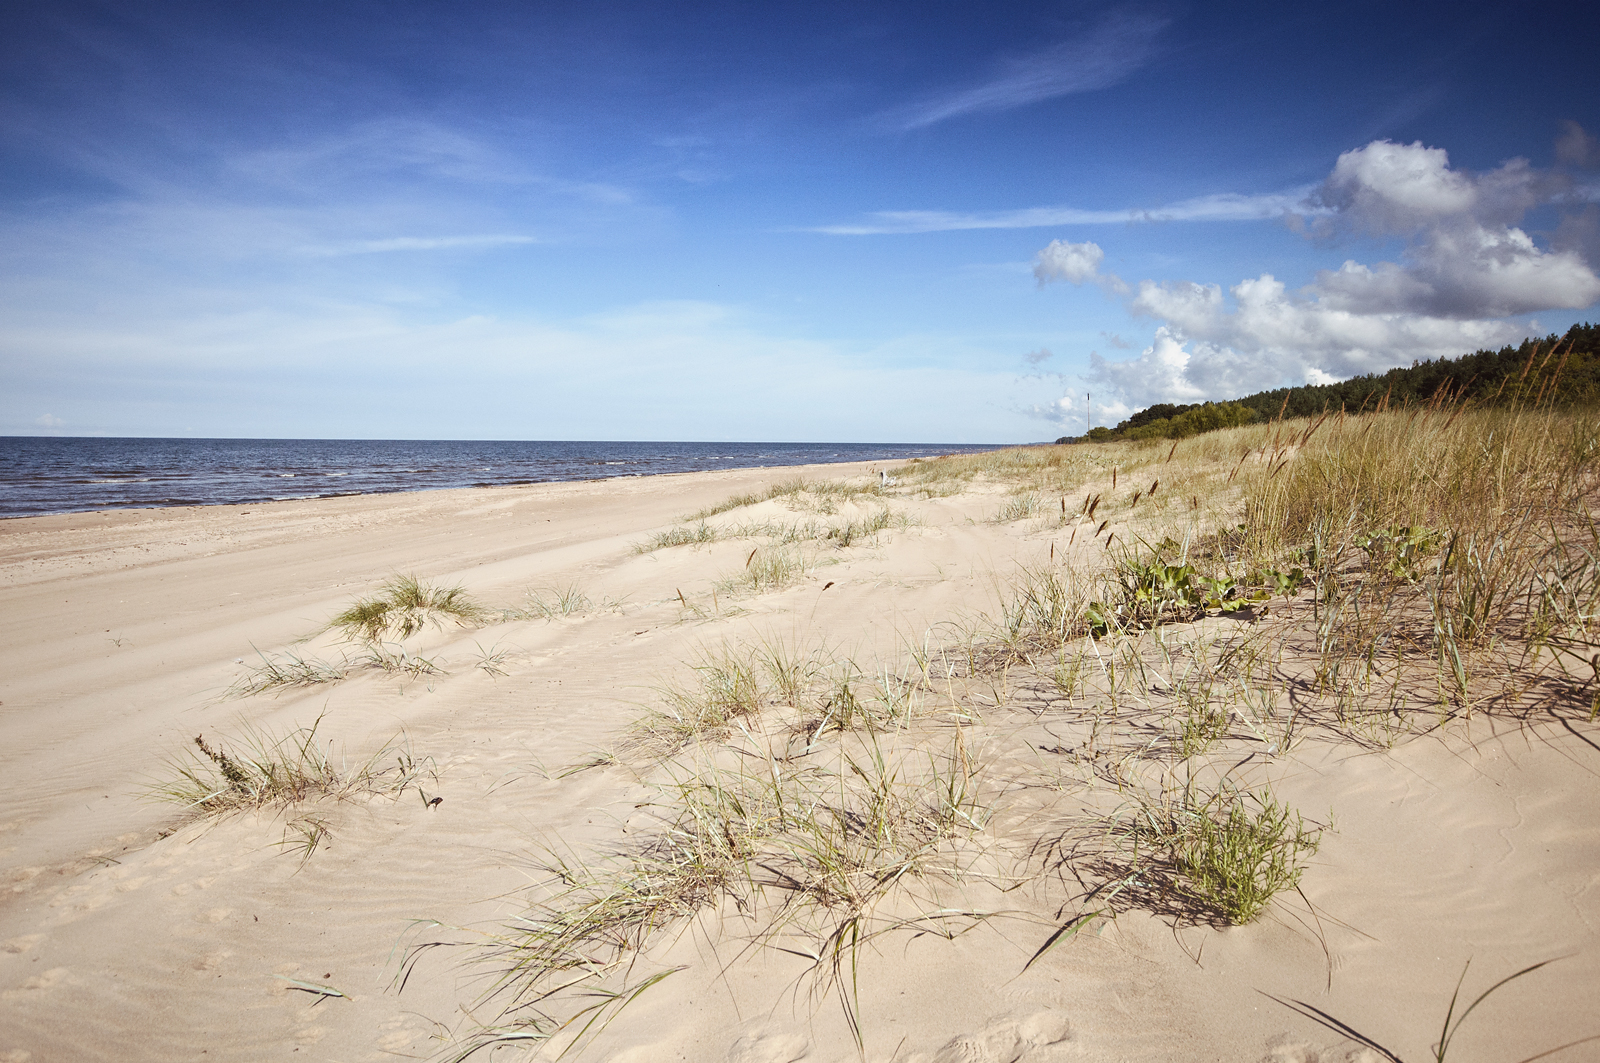 Camping on a beach in Latvia